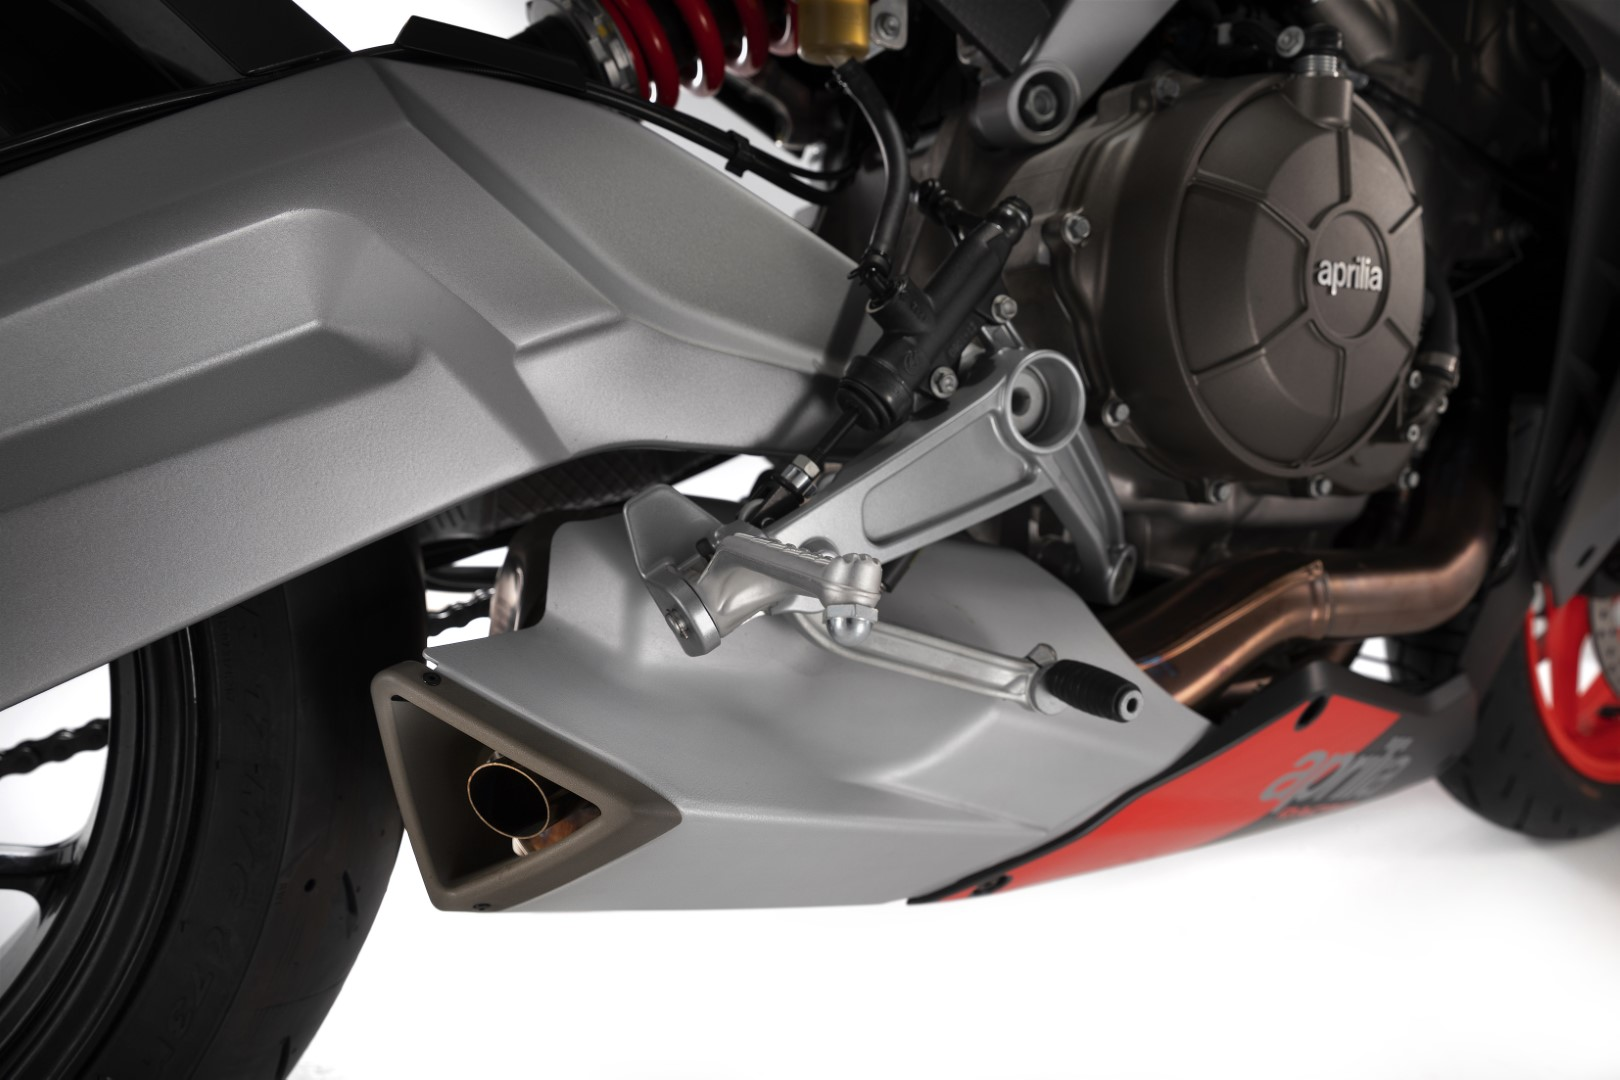 aprilia rs 660 exhaust